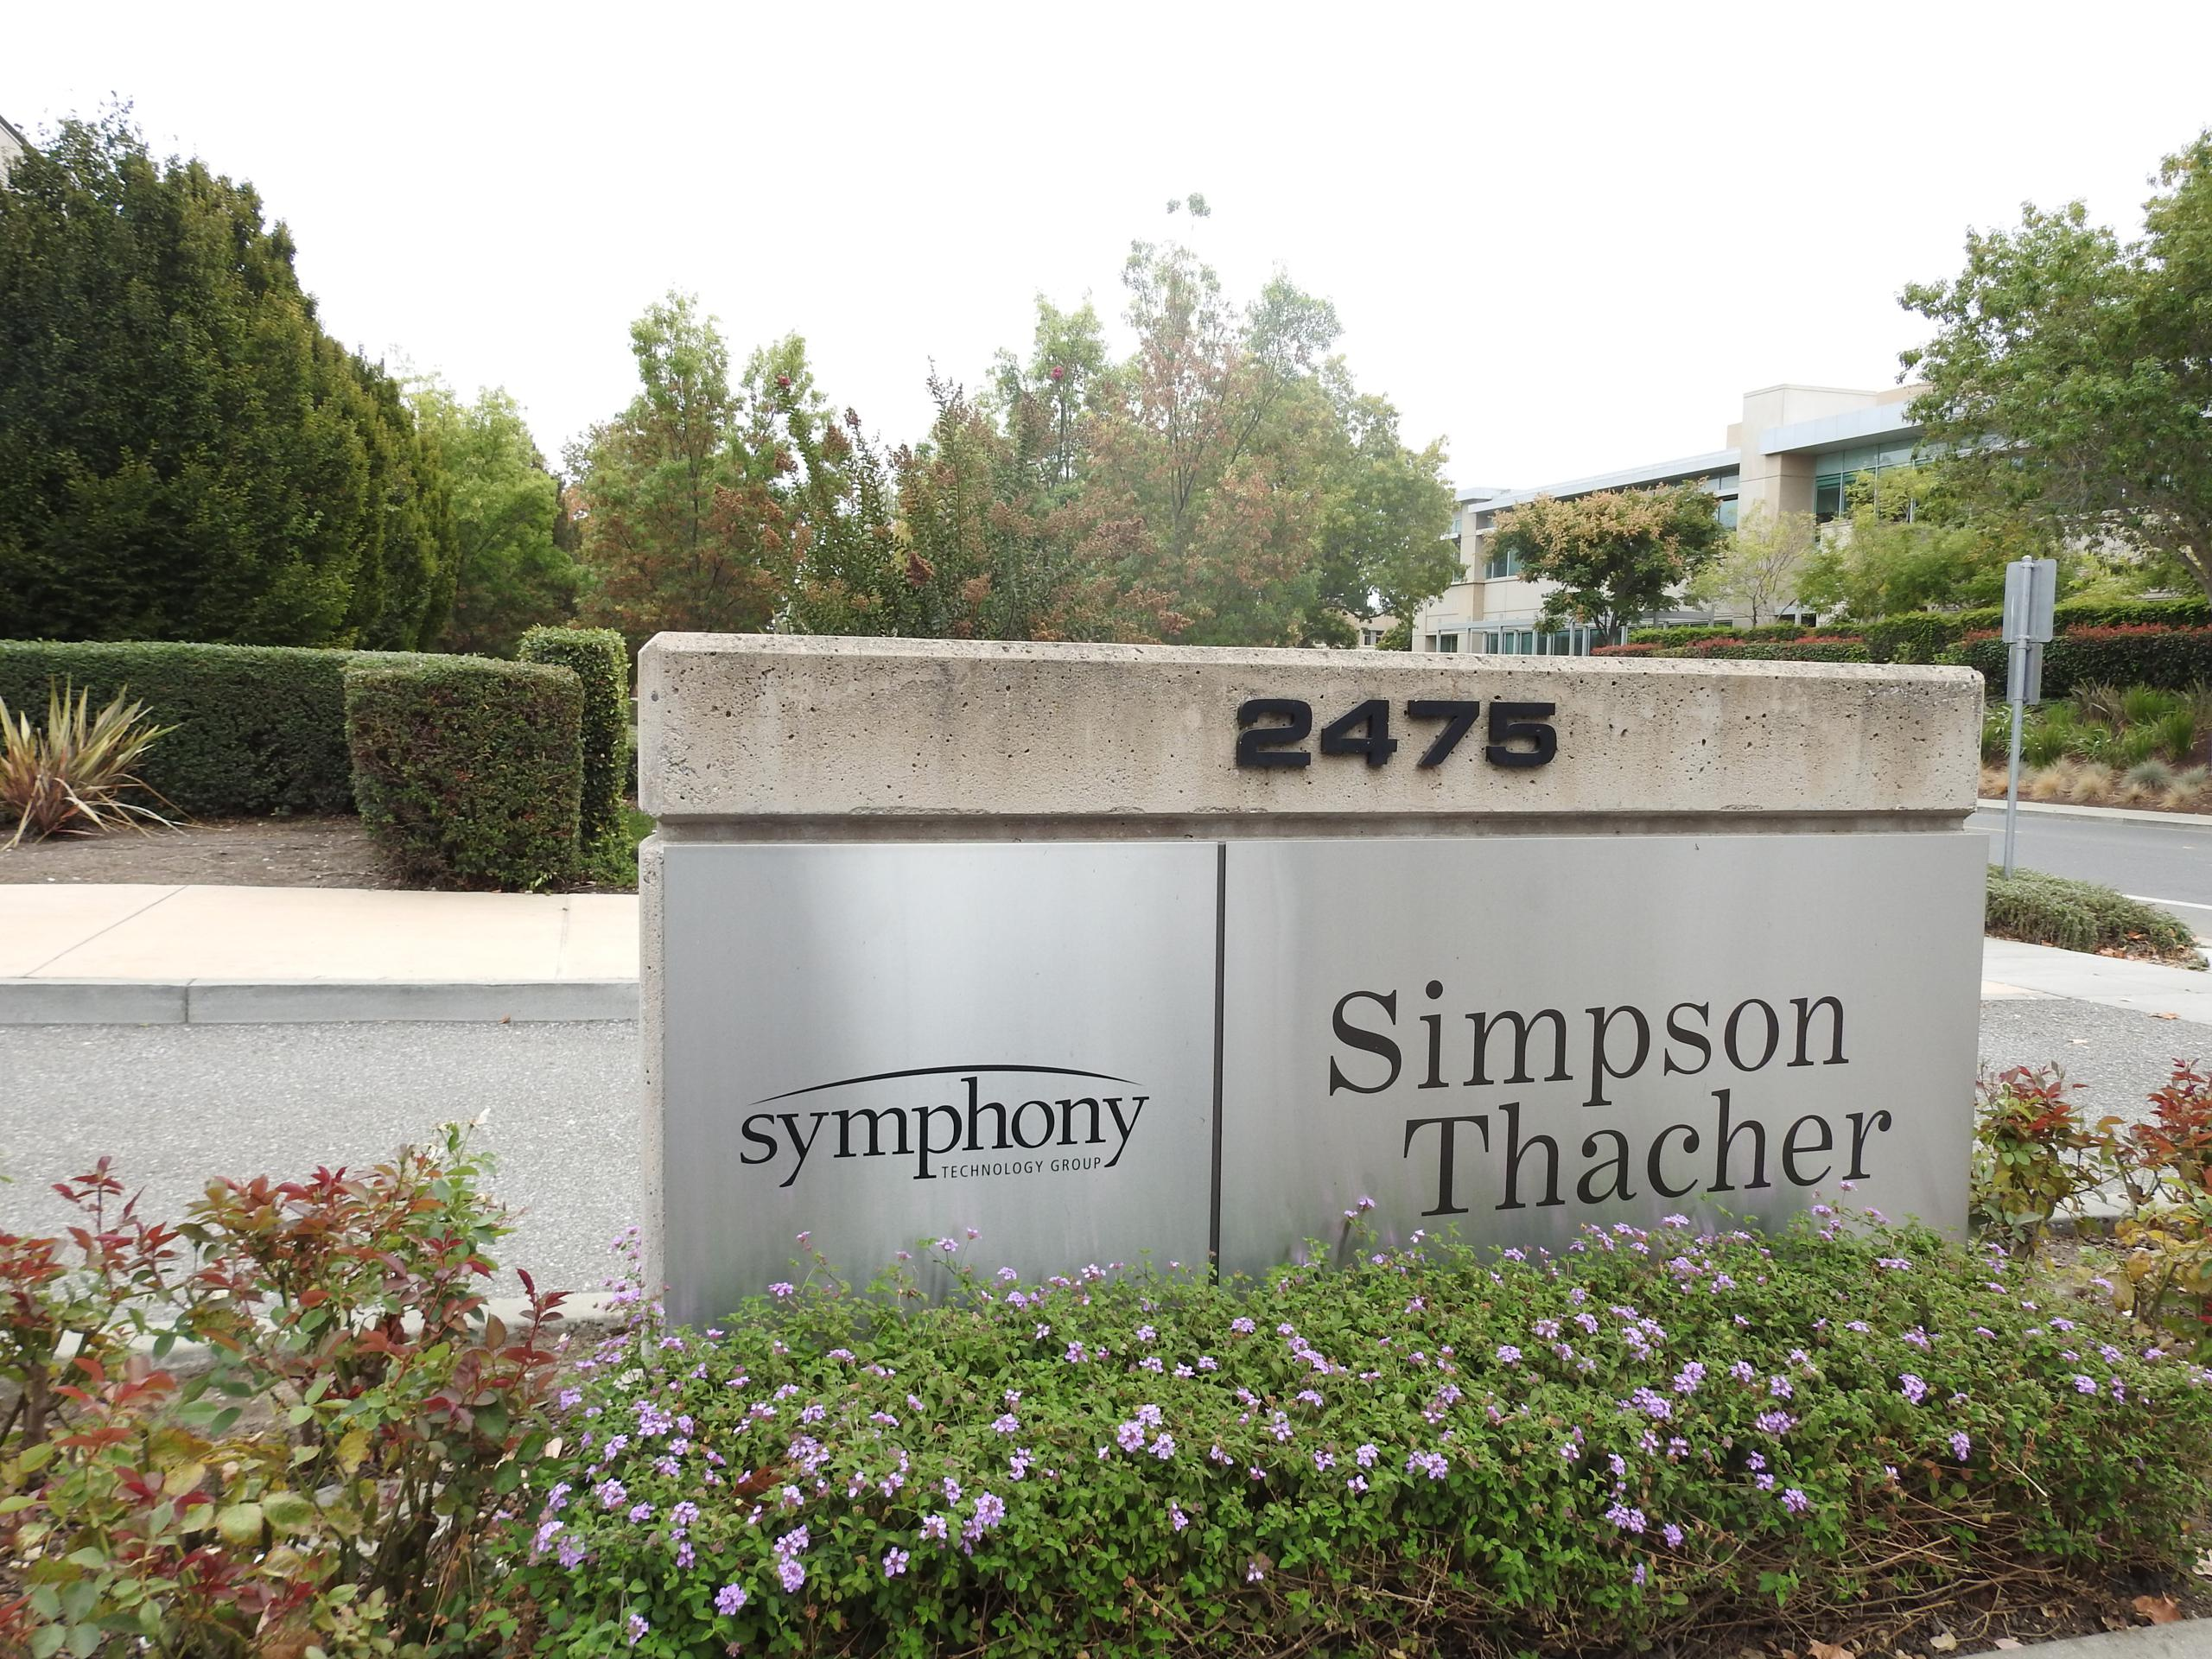 Entrance to Symphony Technology Group's headquarters in Palo Alto, California.